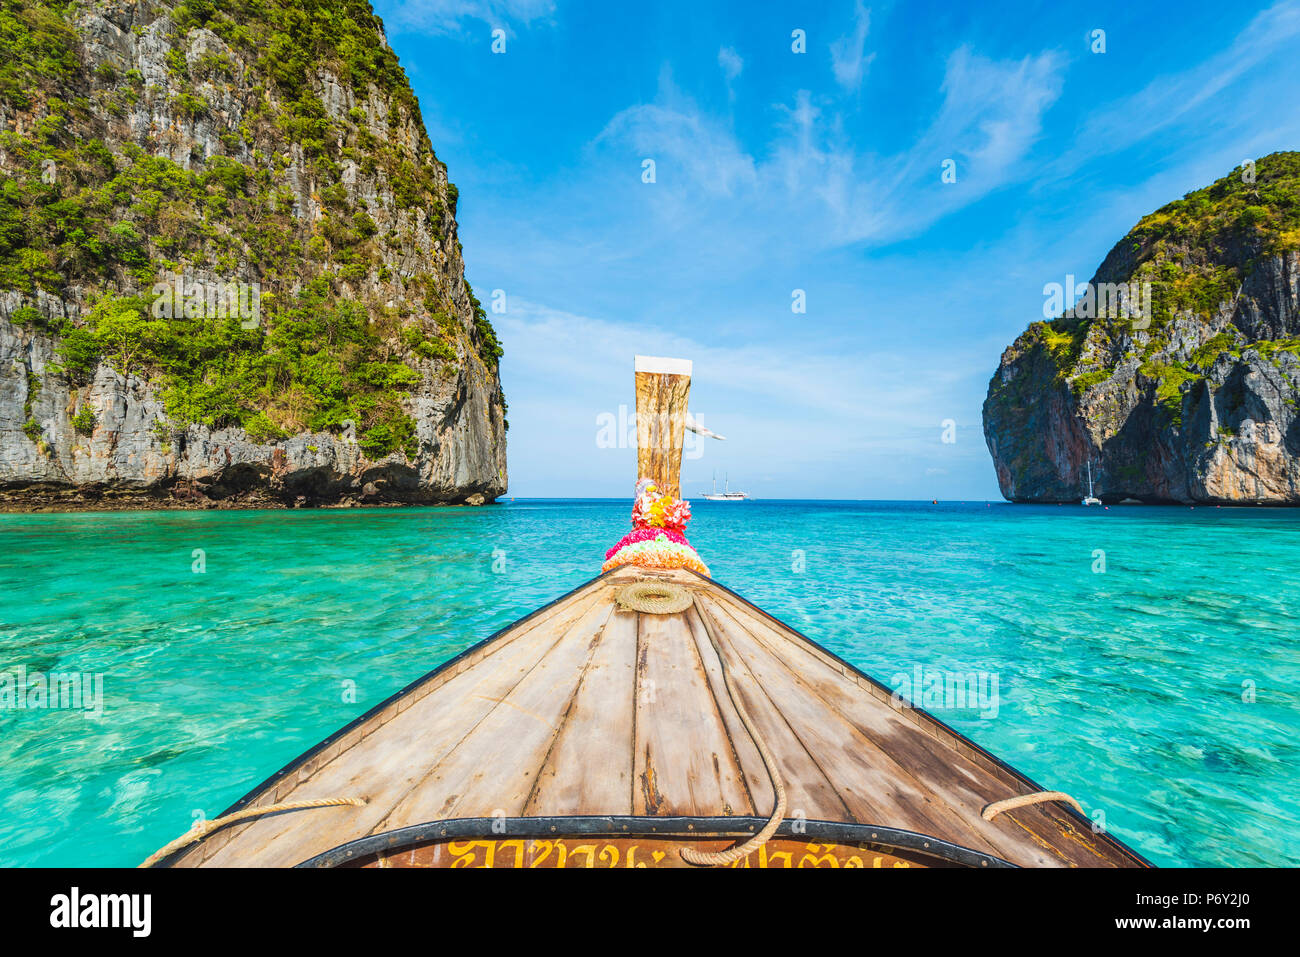 Ao Maya Beach (Maya Bay), Ko Phi Phi Leh, Krabi Province, Thailand. Wooden bow of a long tail boat. - Stock Image